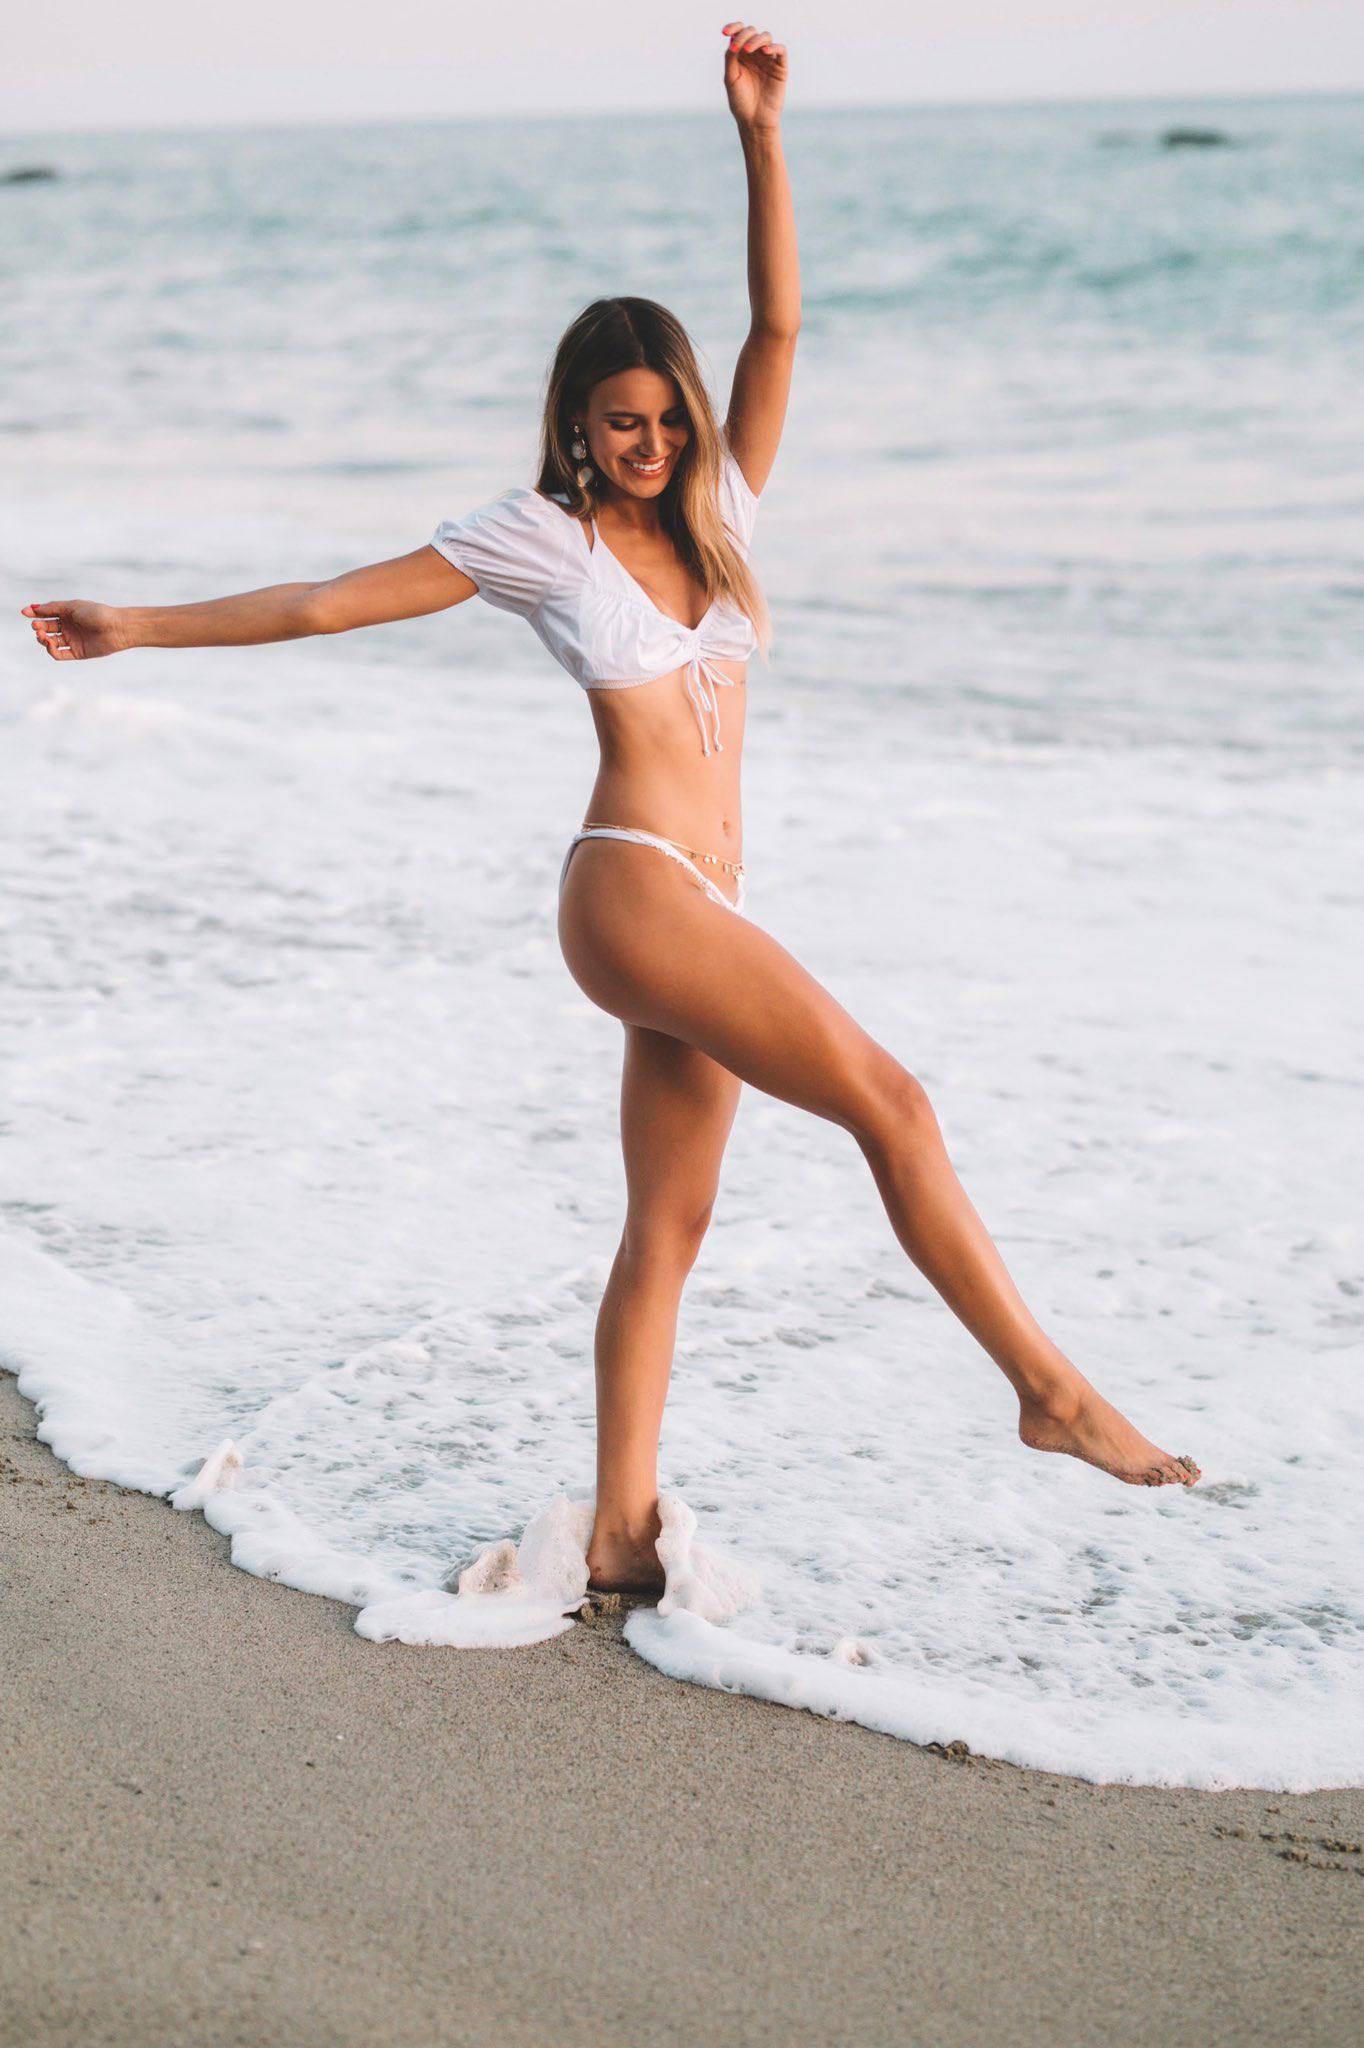 Madison Reed Sexy Body In Beach Photoshoot By Daniel Poplawsky 0003